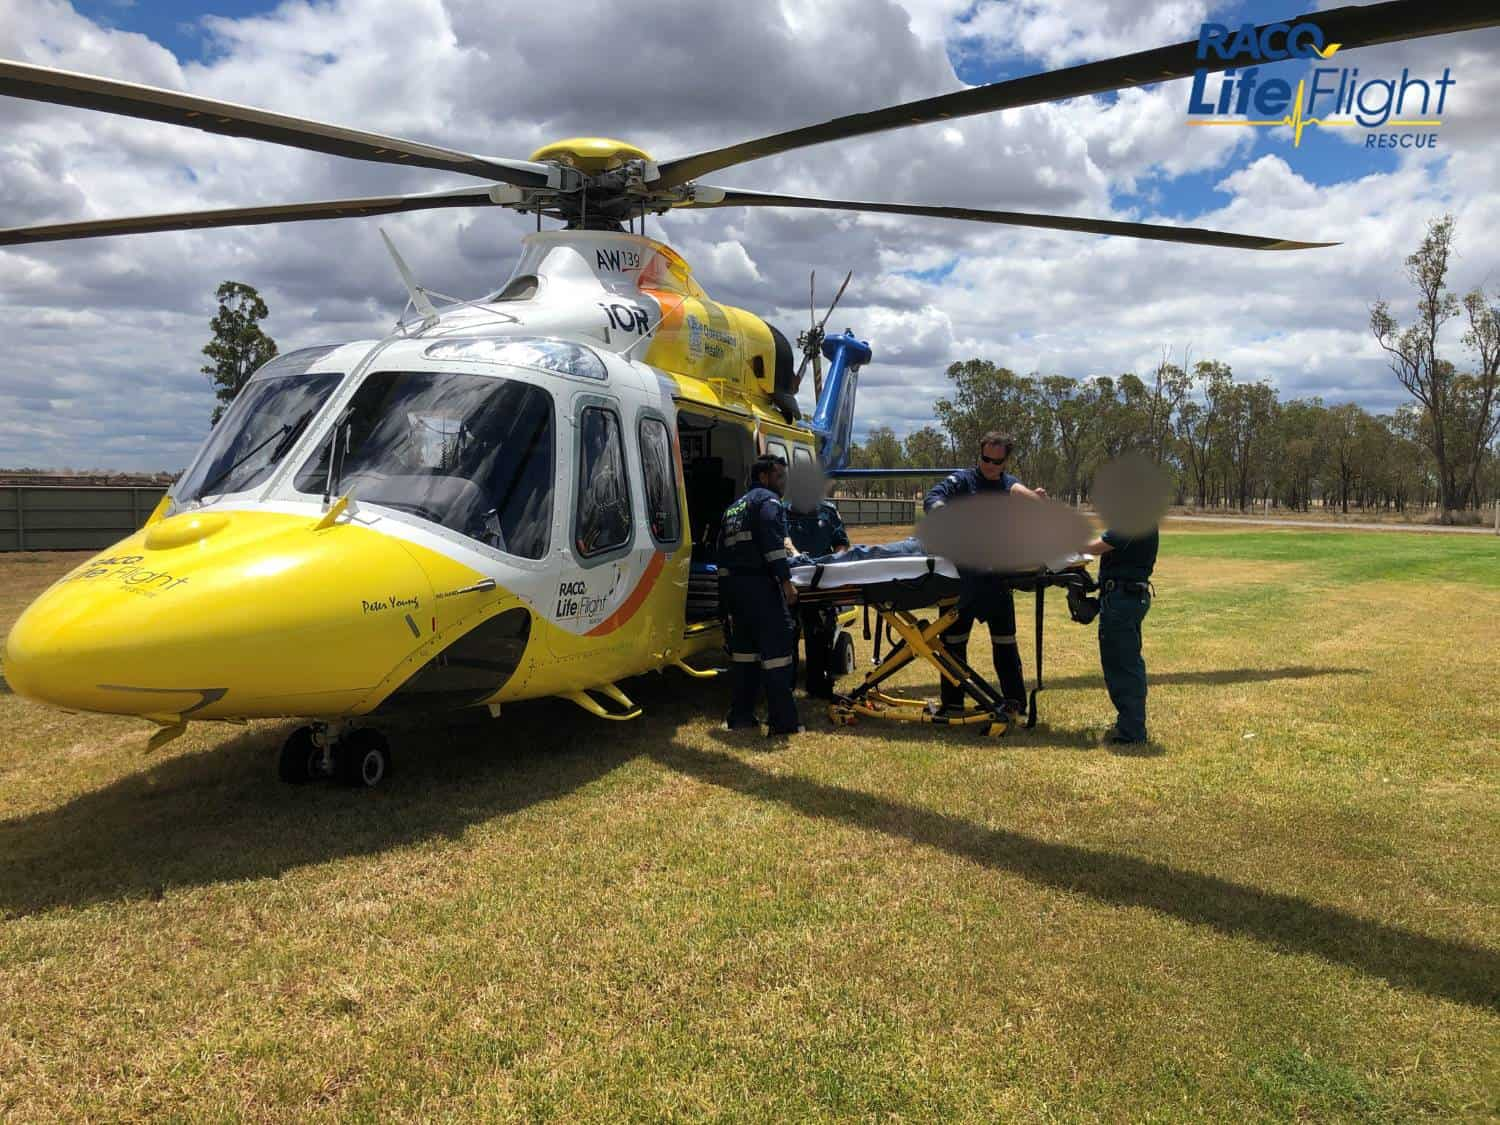 RACQ LifeFlight Rescue airlifts man after farming accident